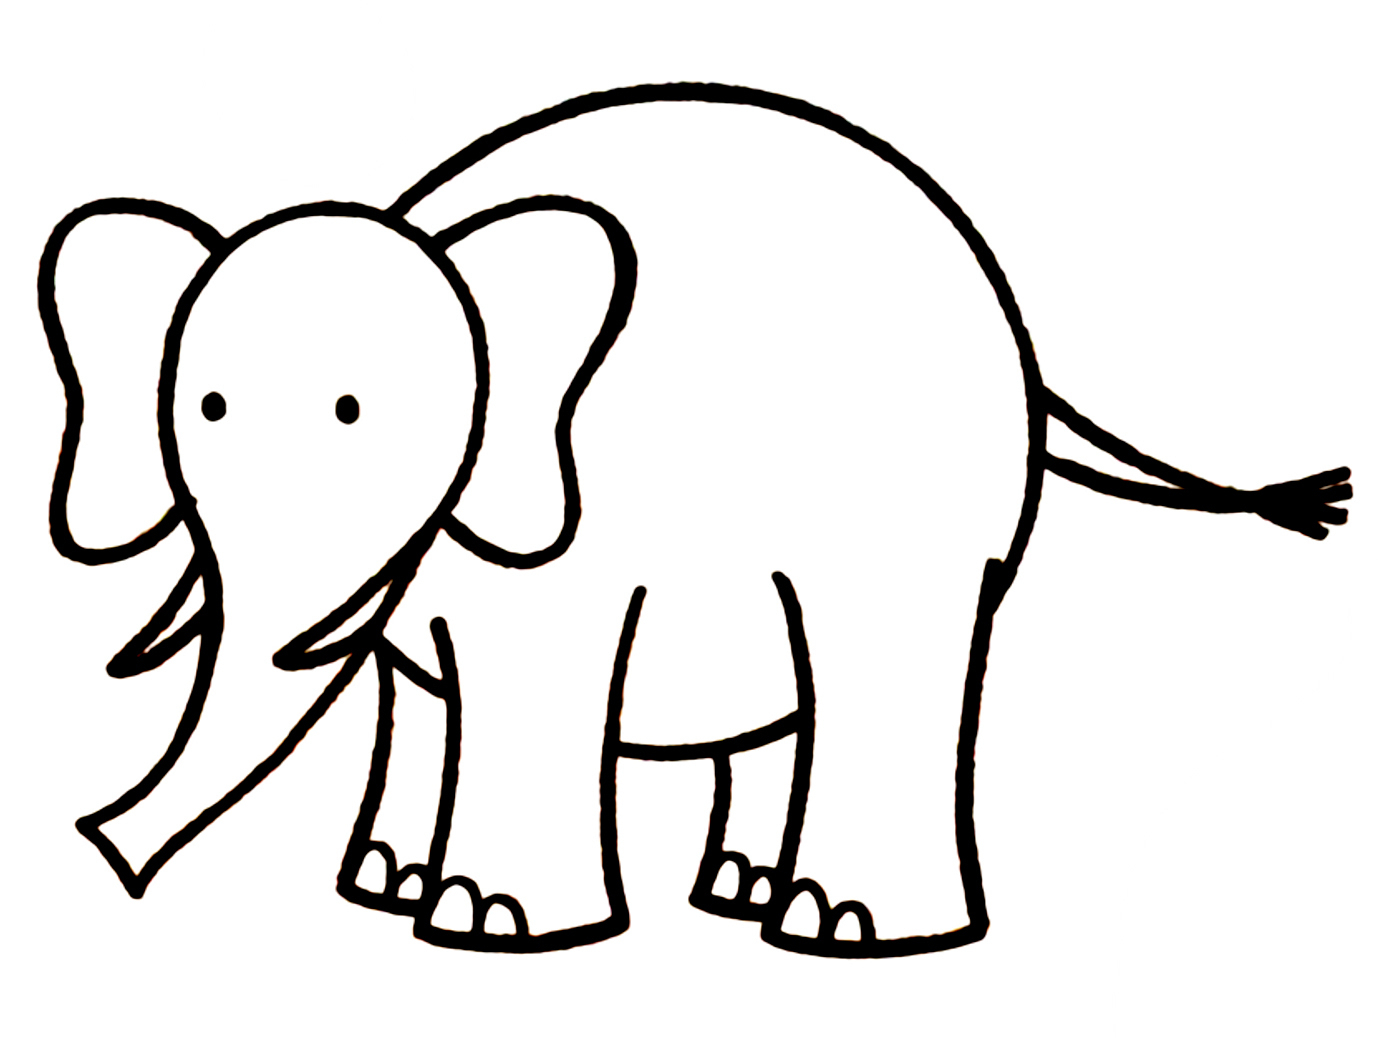 1378x1038 Awesome Elephant Drawing For Kids Gallery